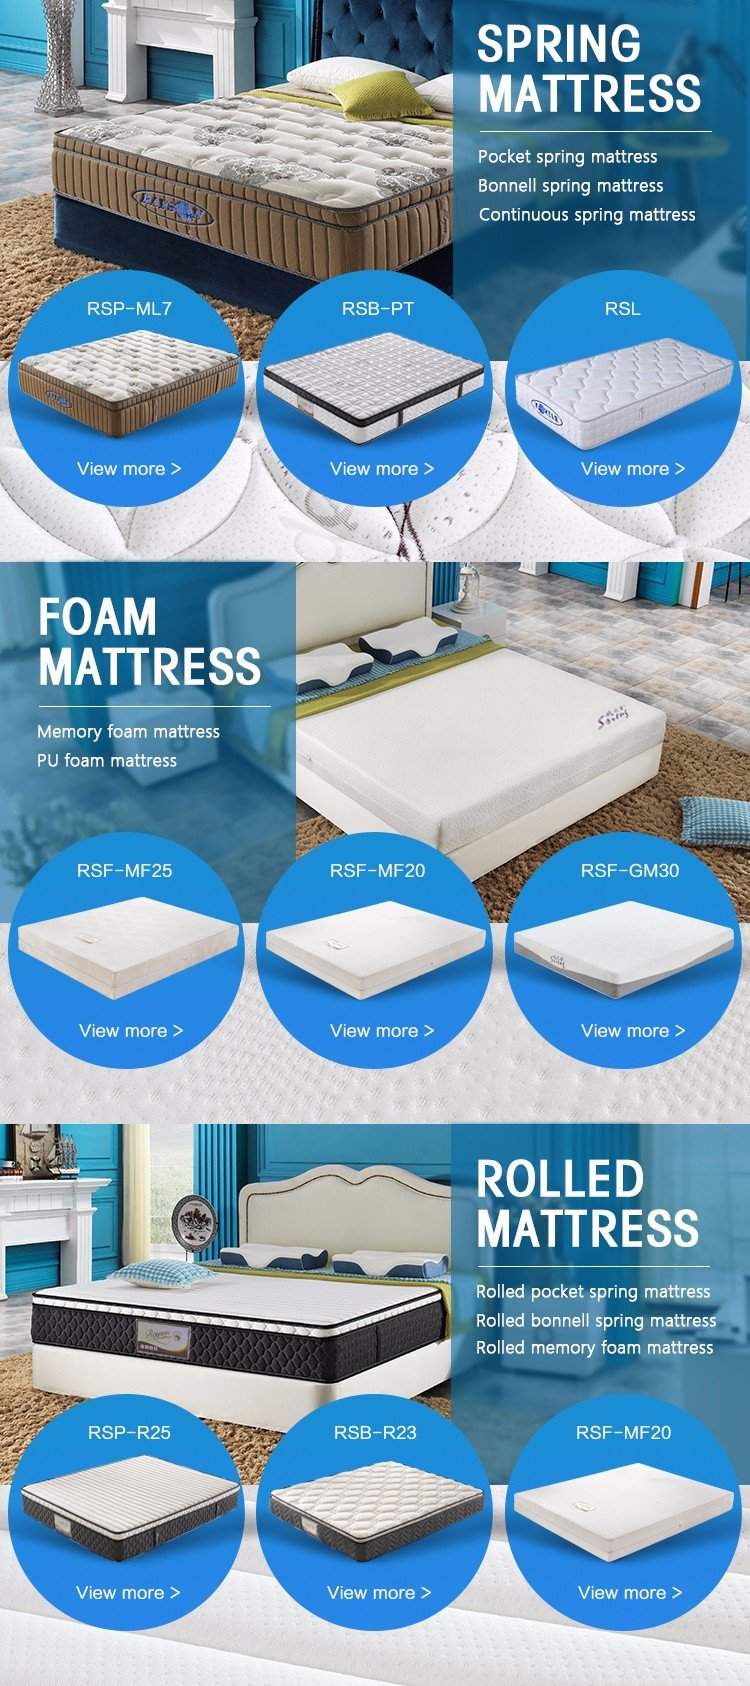 New pocket sprung double mattress with memory foam top rolled Supply-10